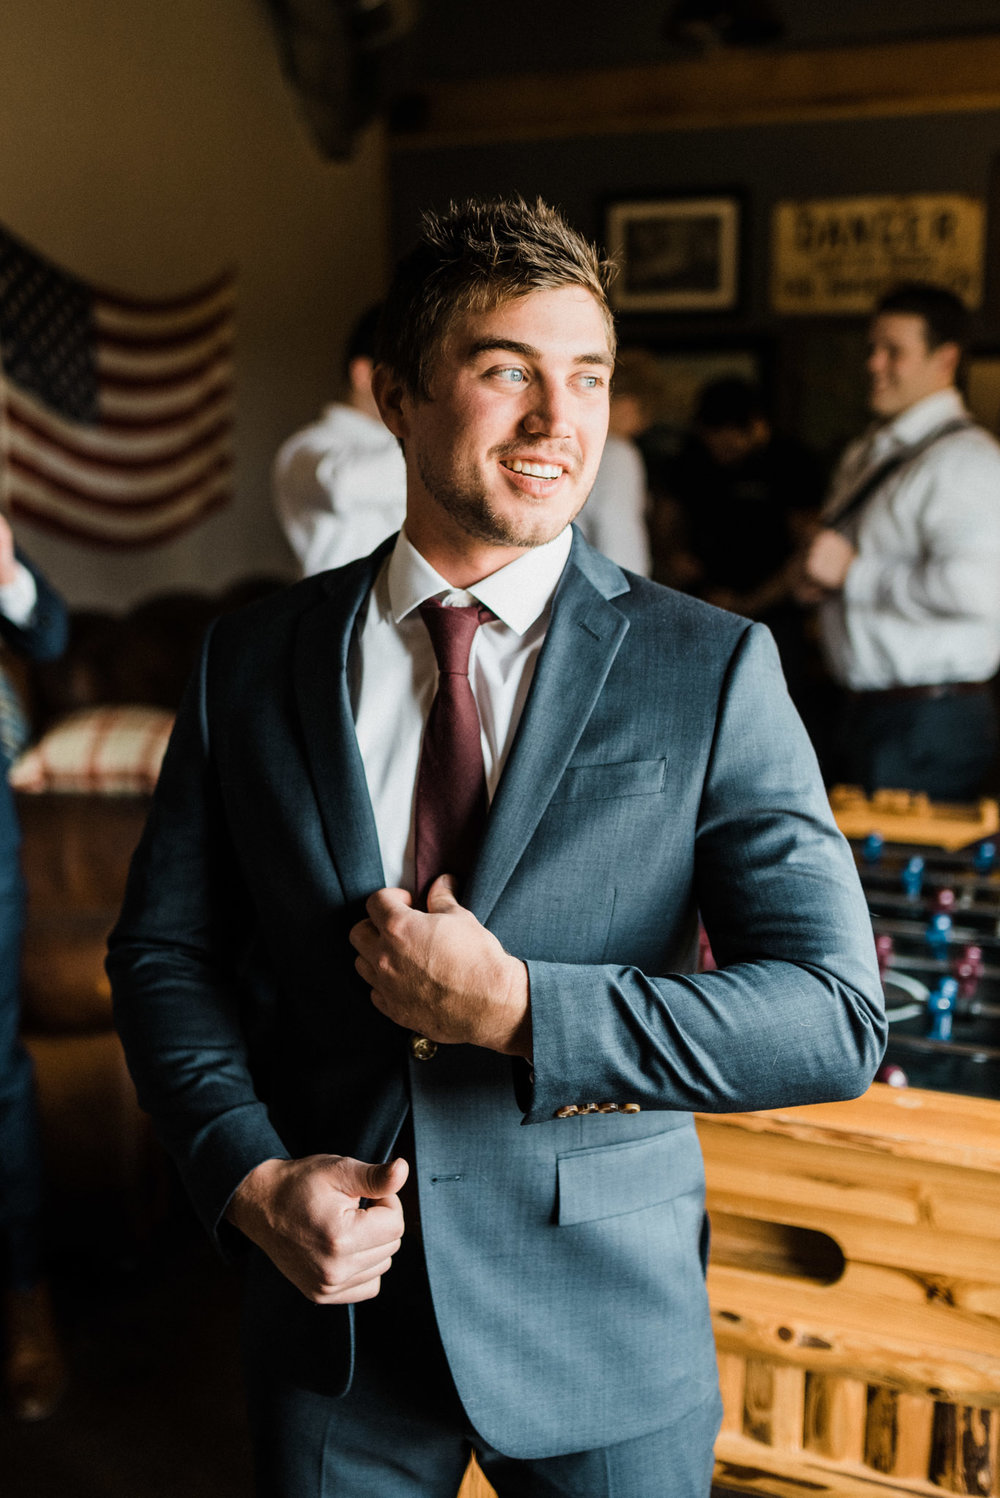 Tanner Burge Photography - Grooms Details - Cara & Kale Winter Wedding at Rosemary Ridge Oklahoma.jpg